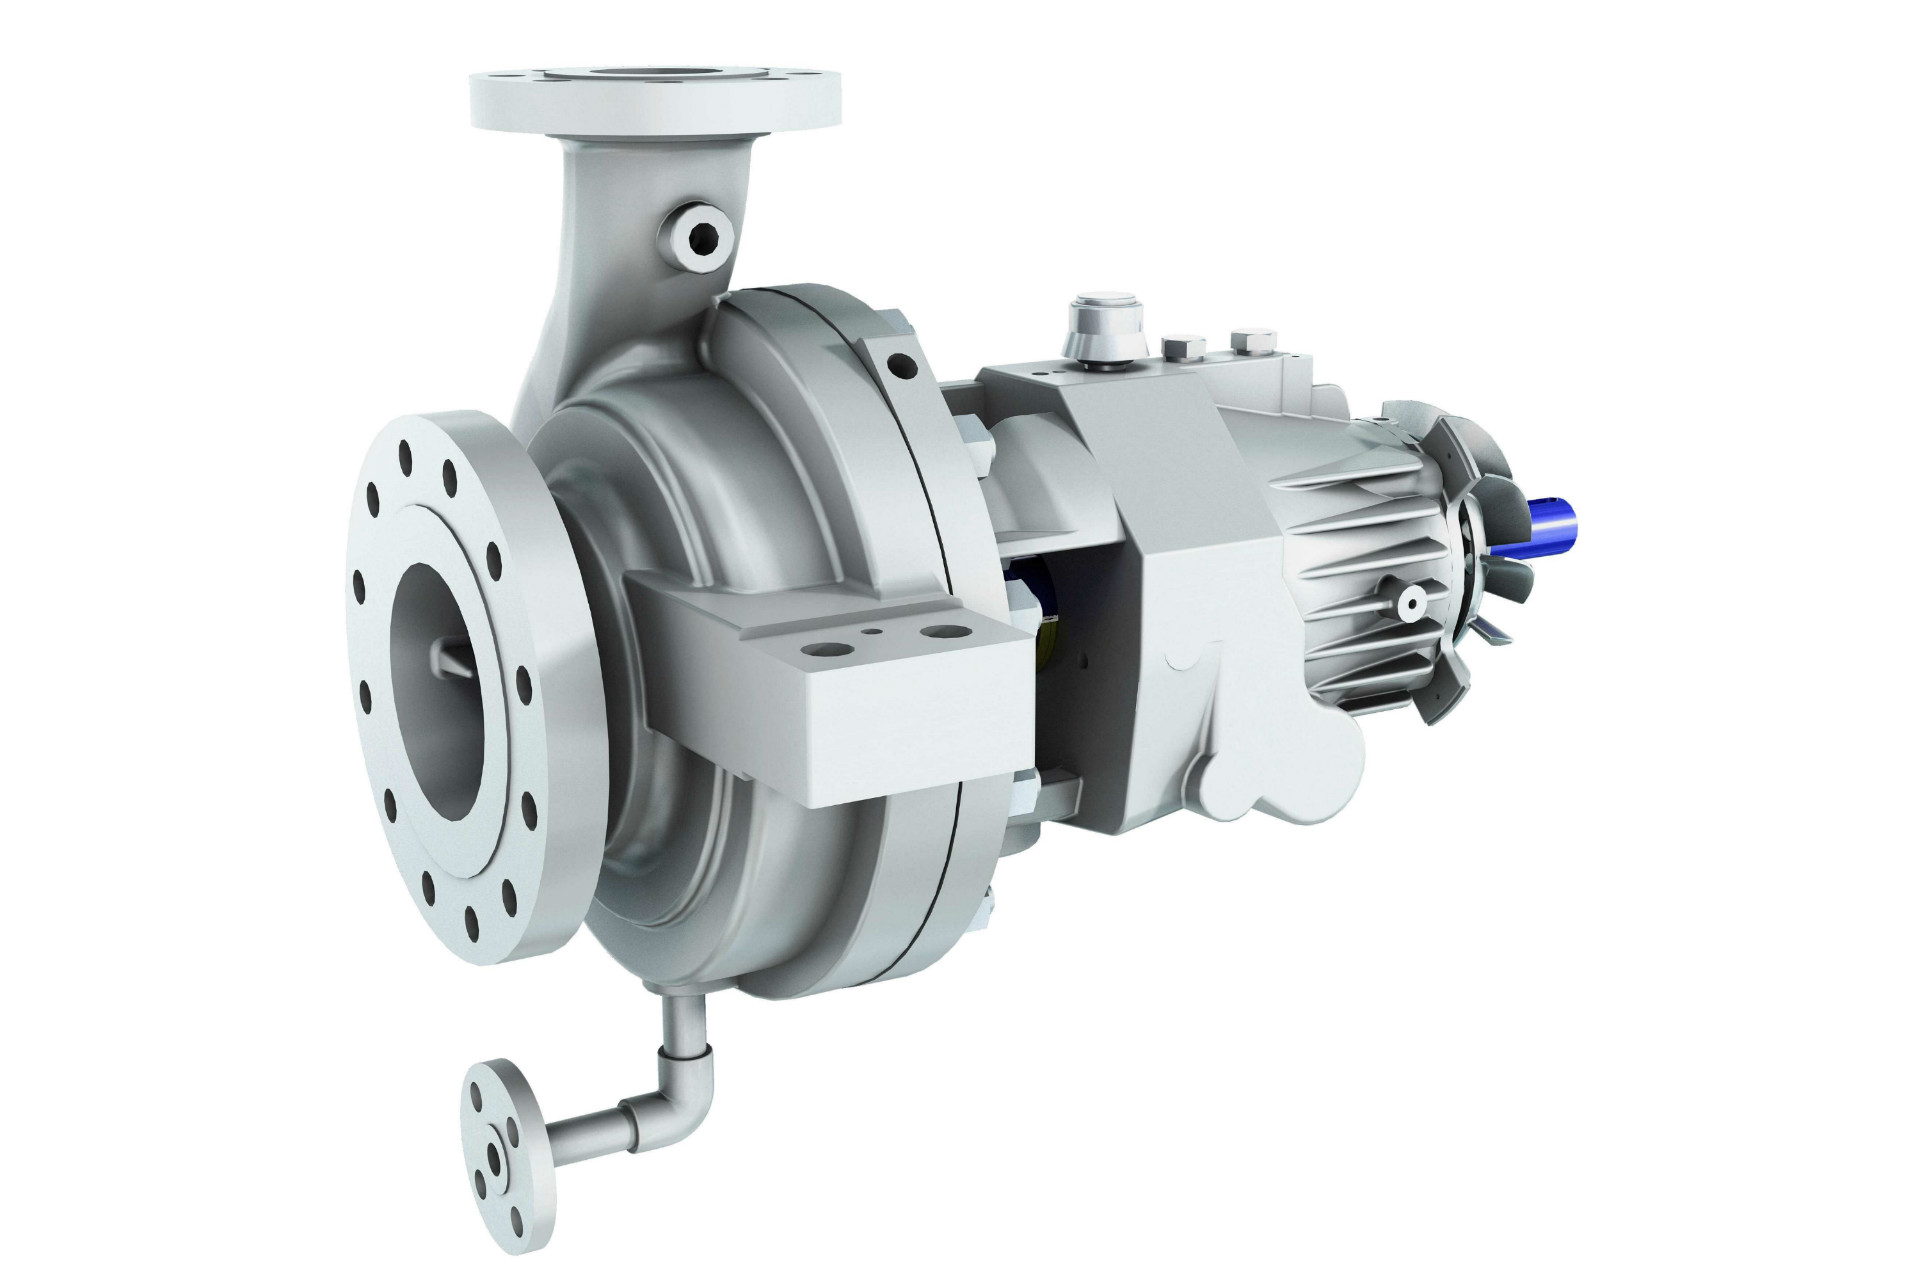 ISO 13709 (API 610) OH2 - OHH Single Stage Overhung Pump